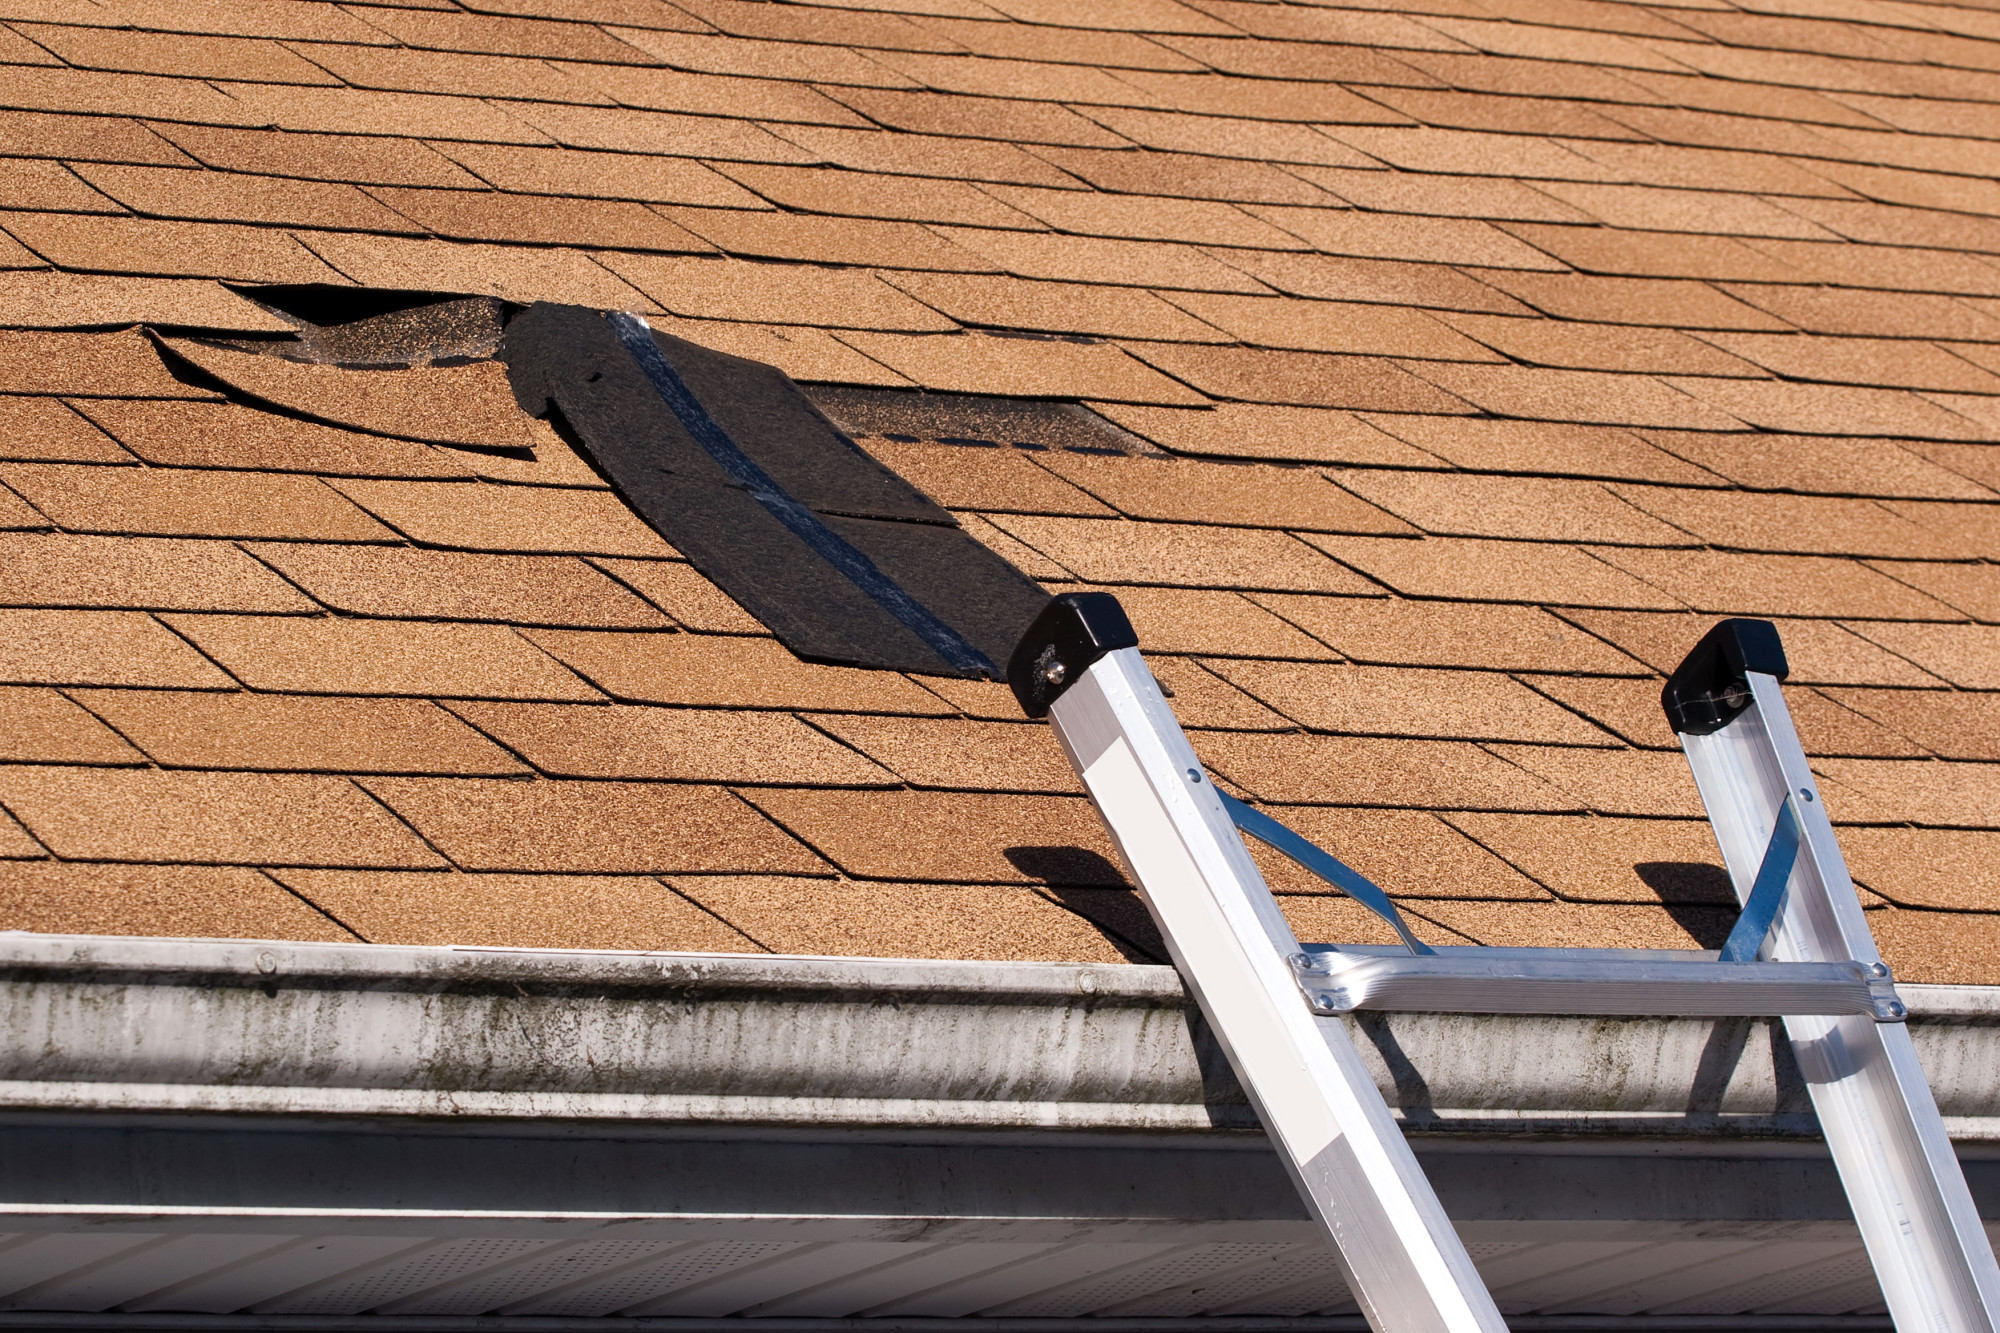 7 Terrible Signs Of A Bad Roof From The Pros